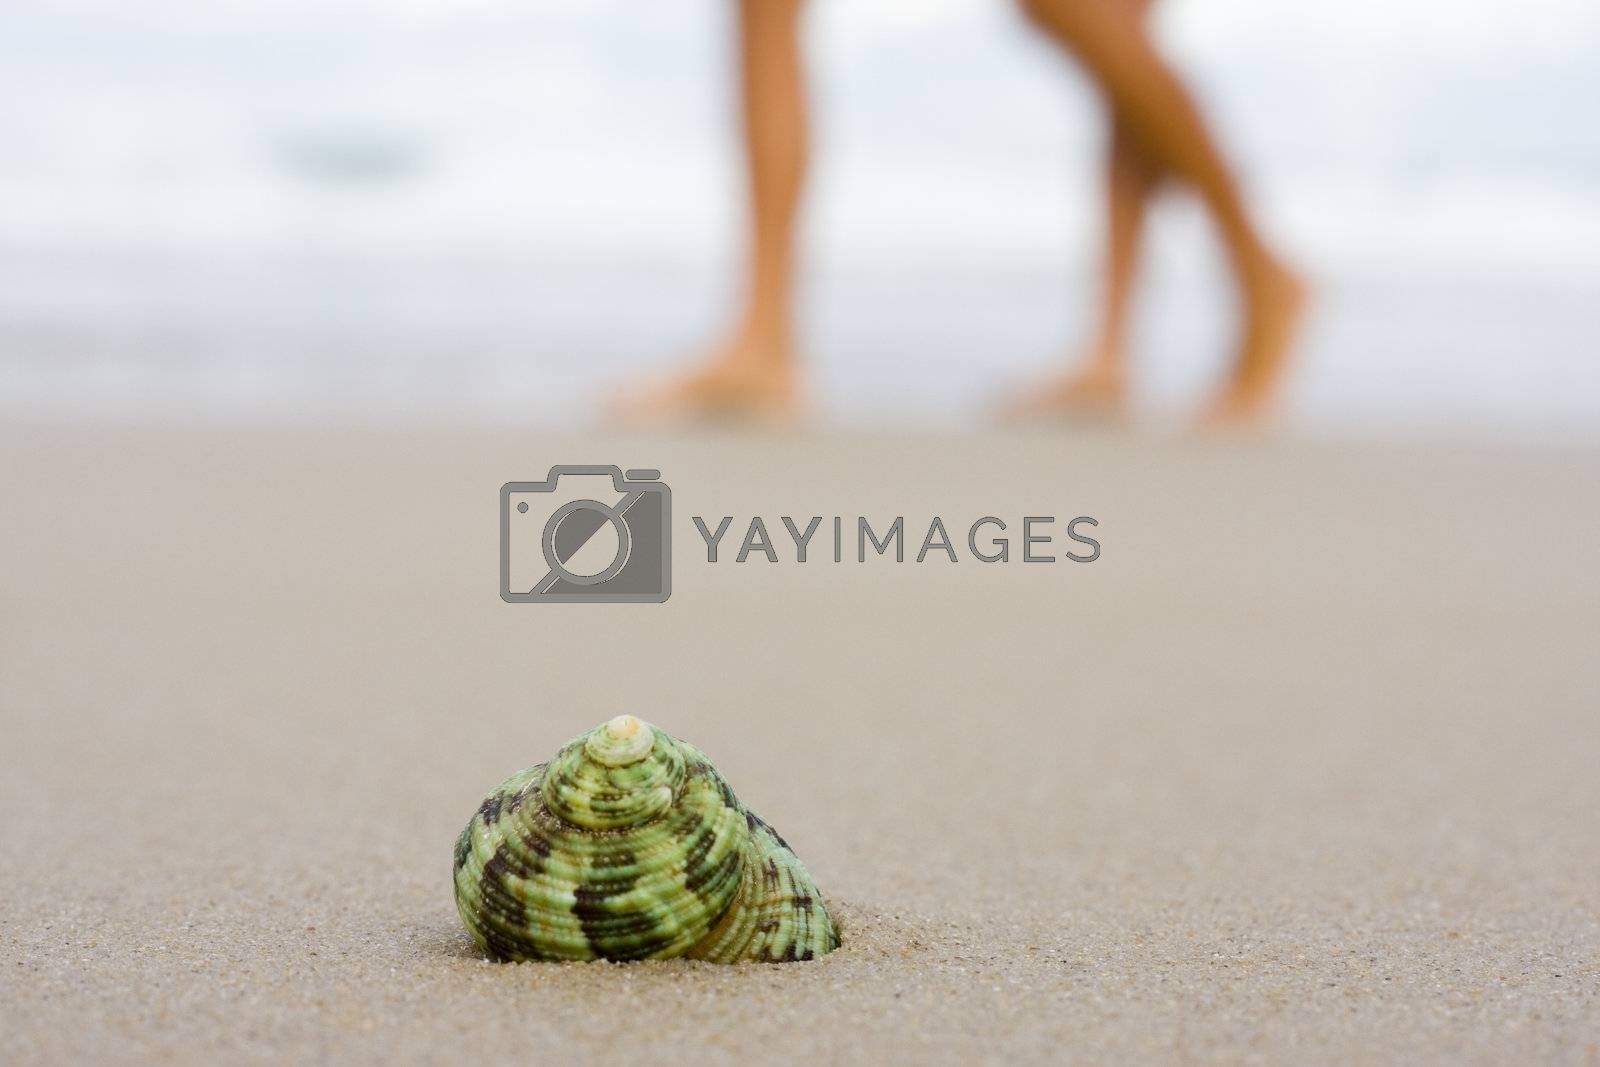 Shell on a beach with blurred people walking in the background